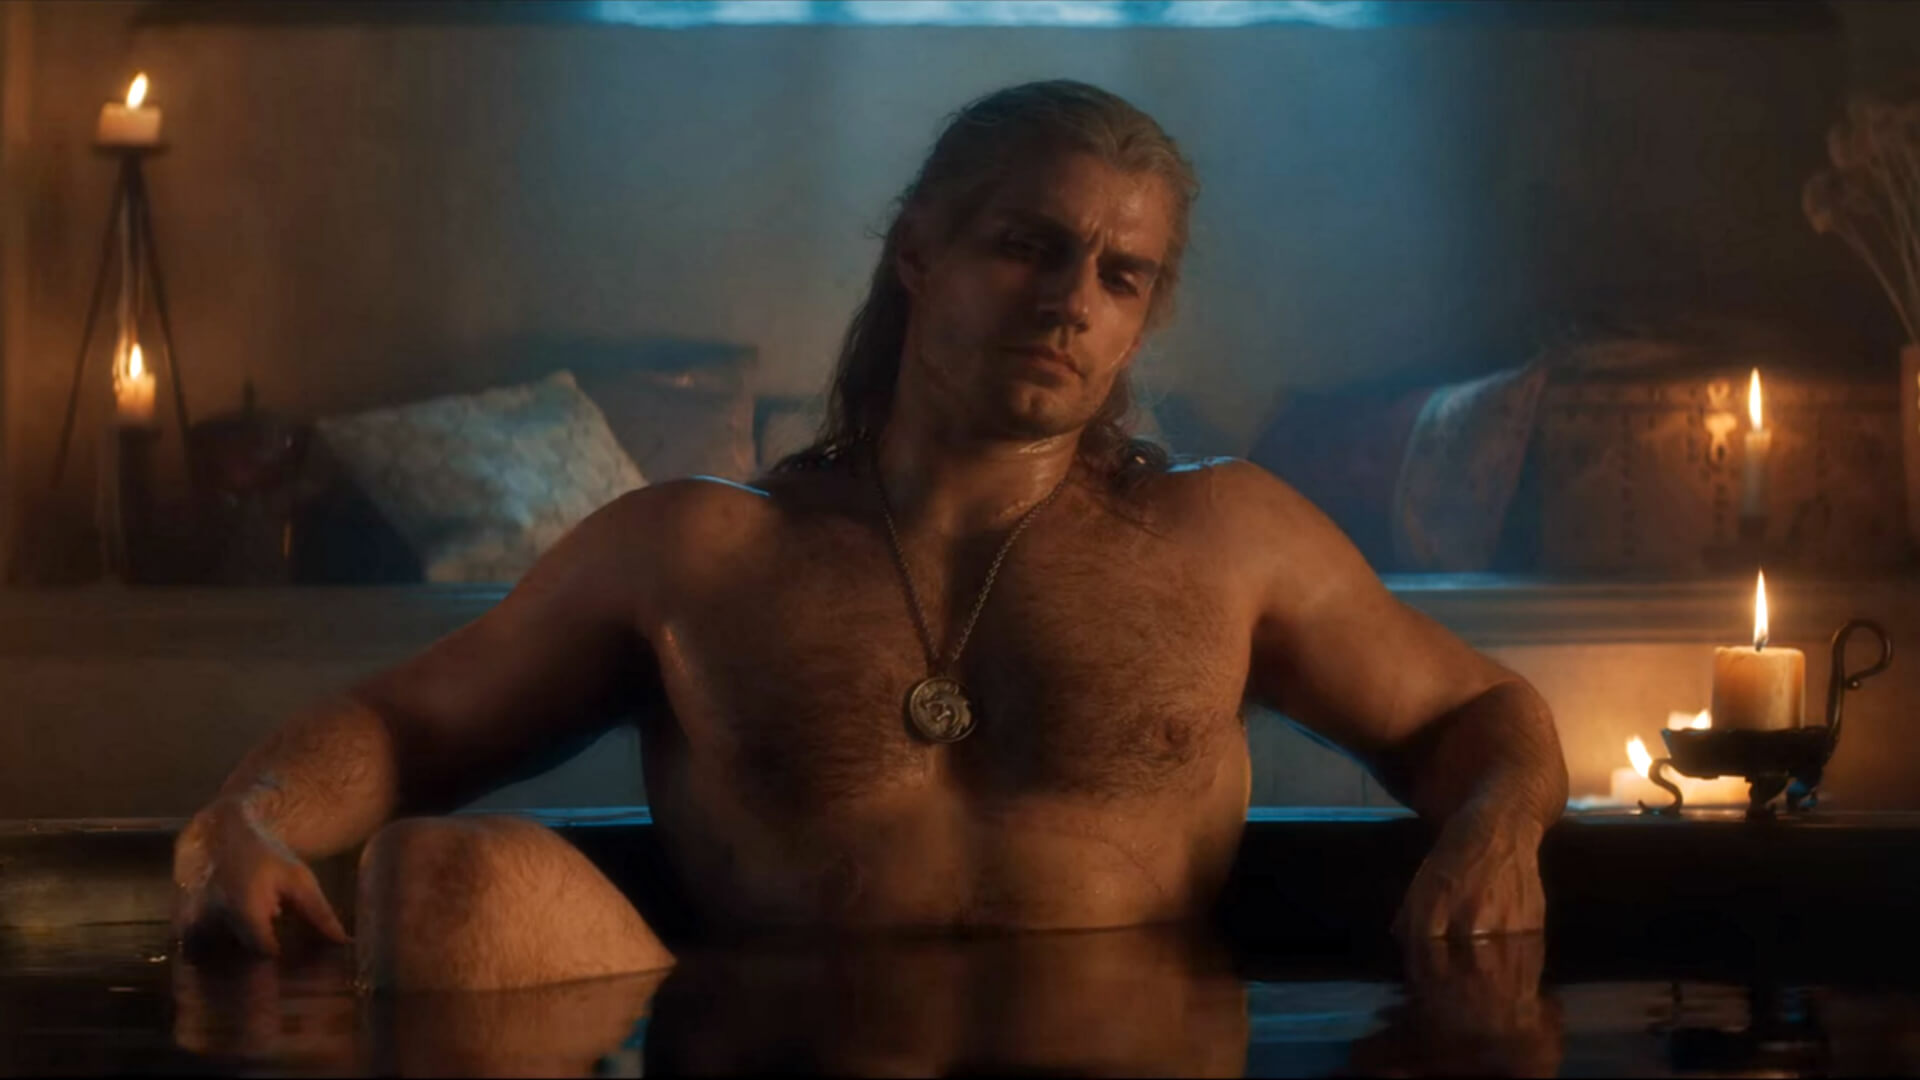 The Witcher: Season 1, Episode 5 Review: Bottled Appetites